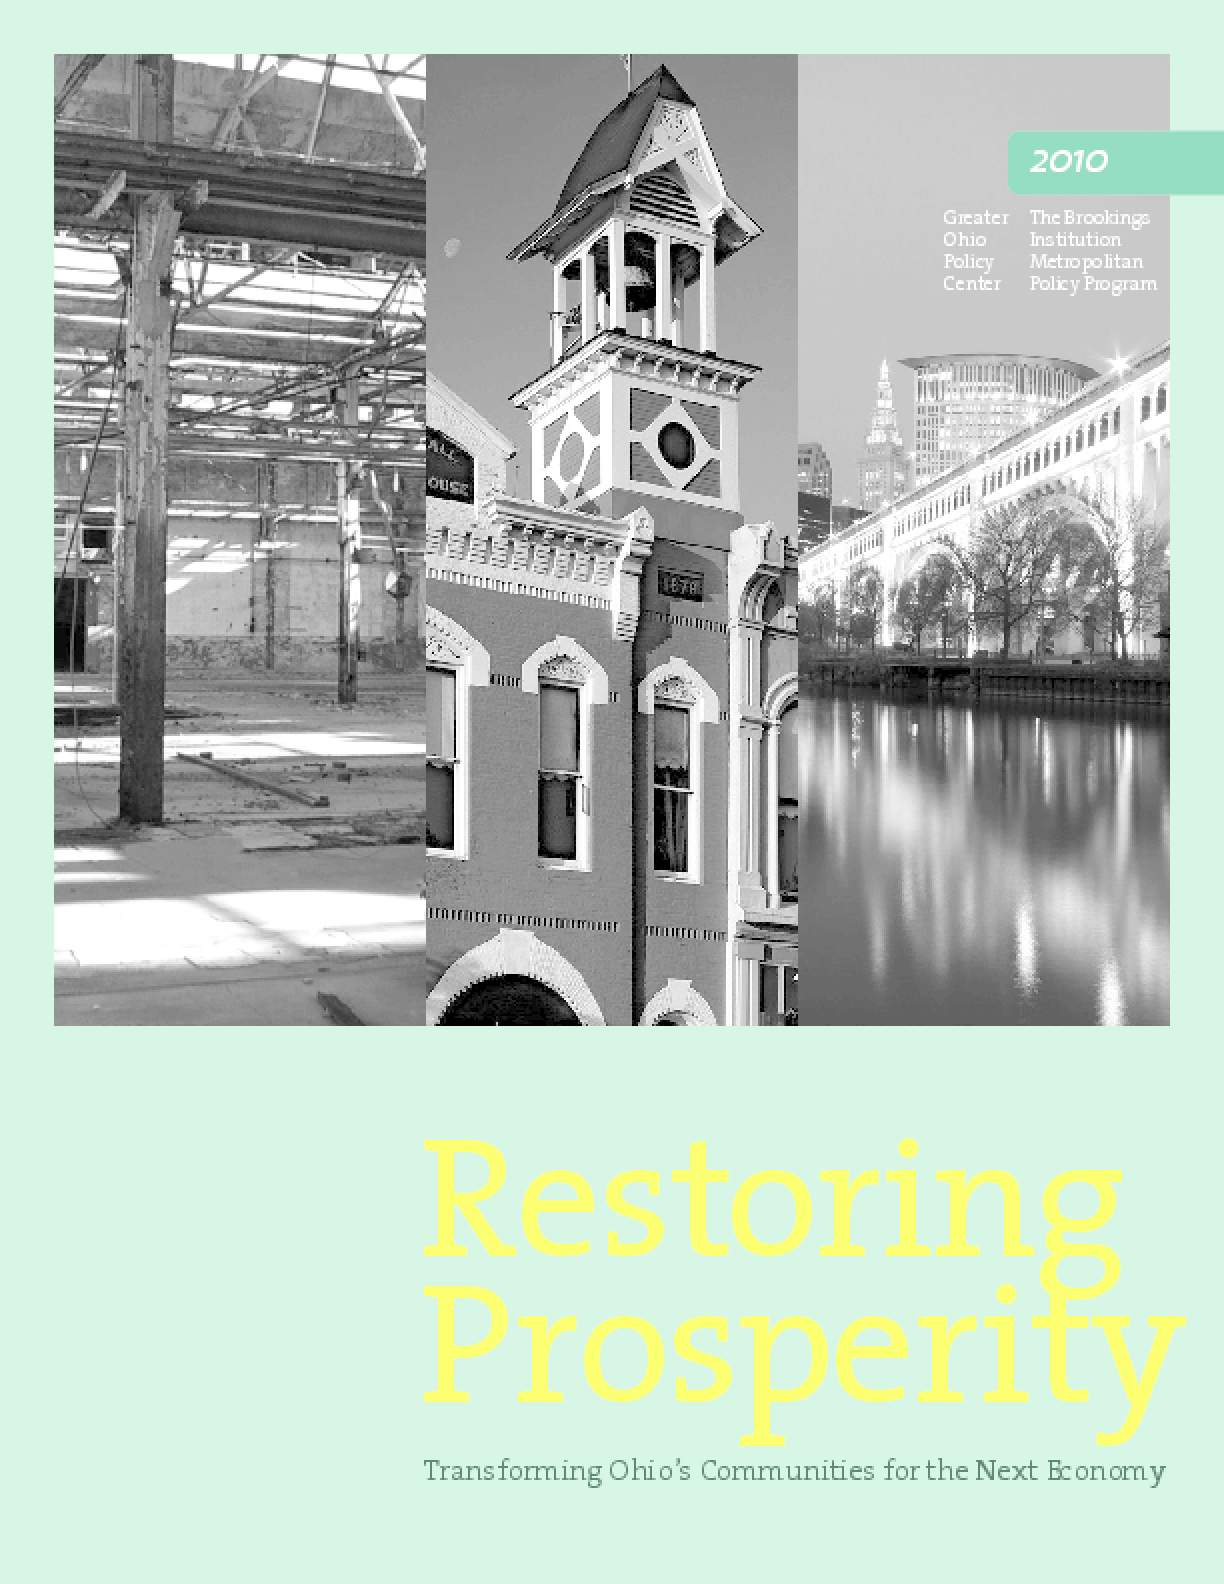 Restoring Prosperity: Transforming Ohio's Communities for the Next Economy